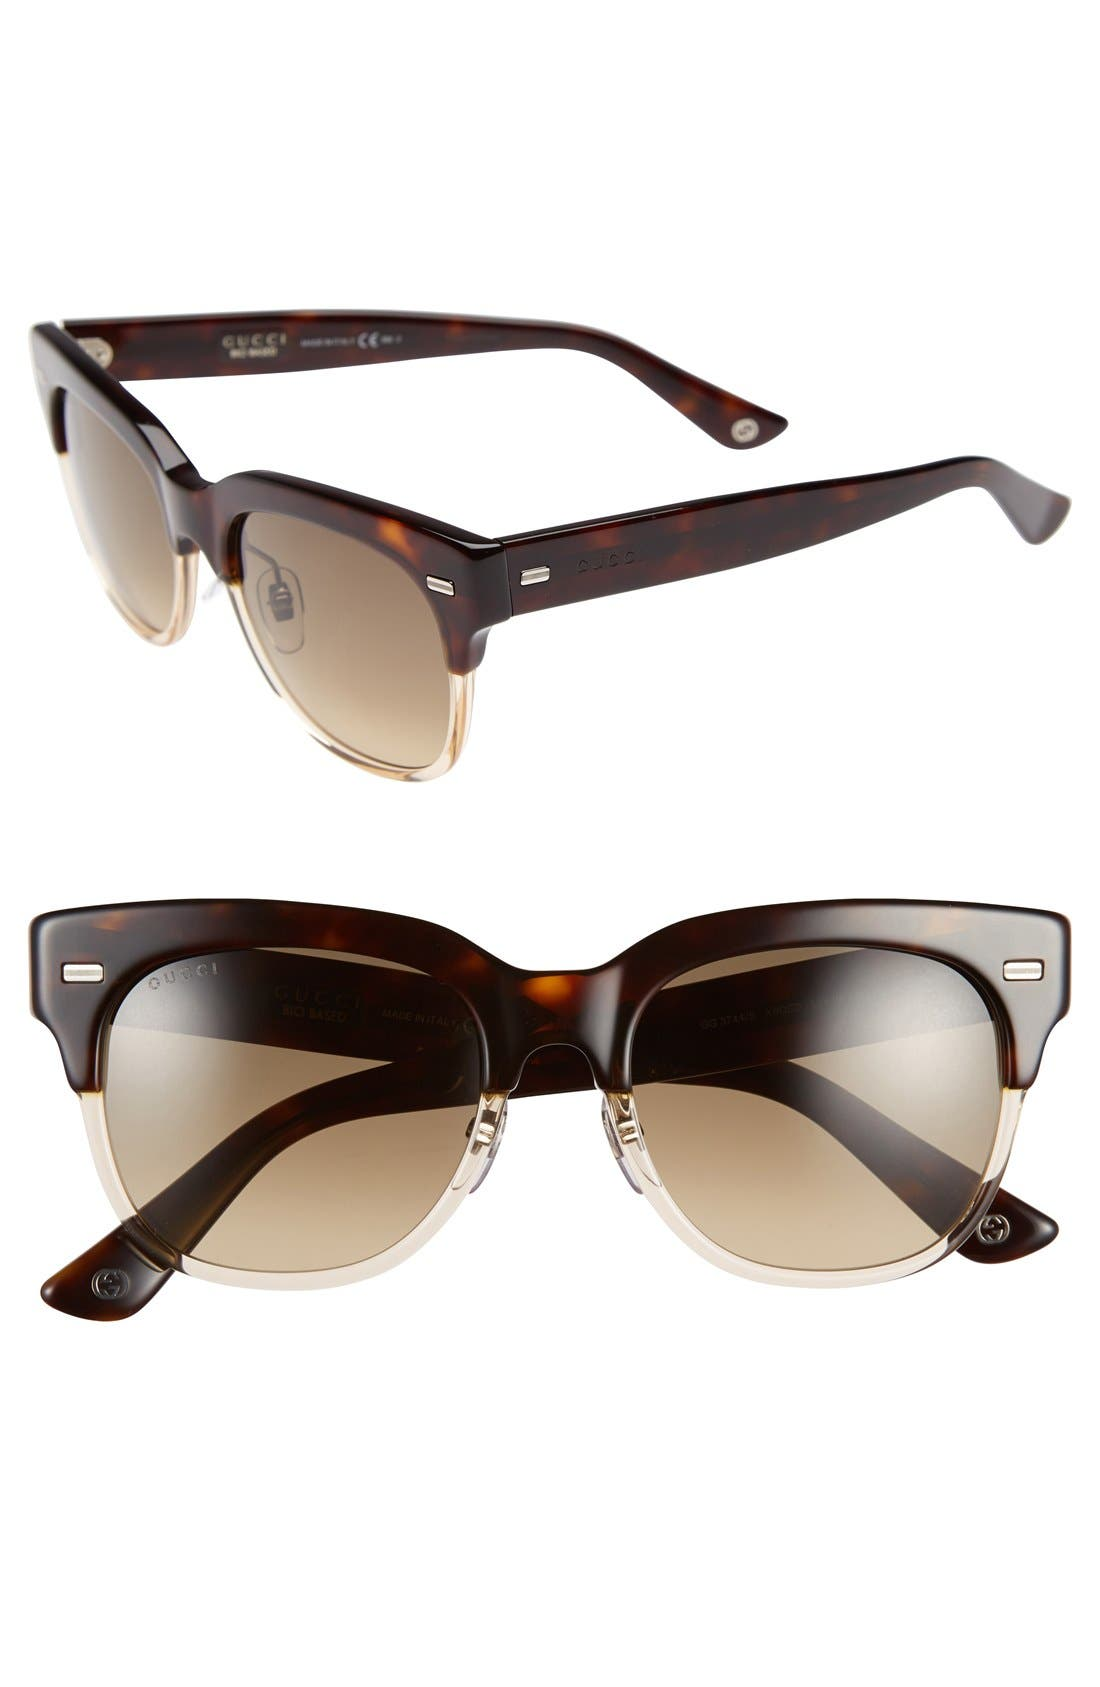 Alternate Image 1 Selected - Gucci 52mm Retro Sunglasses